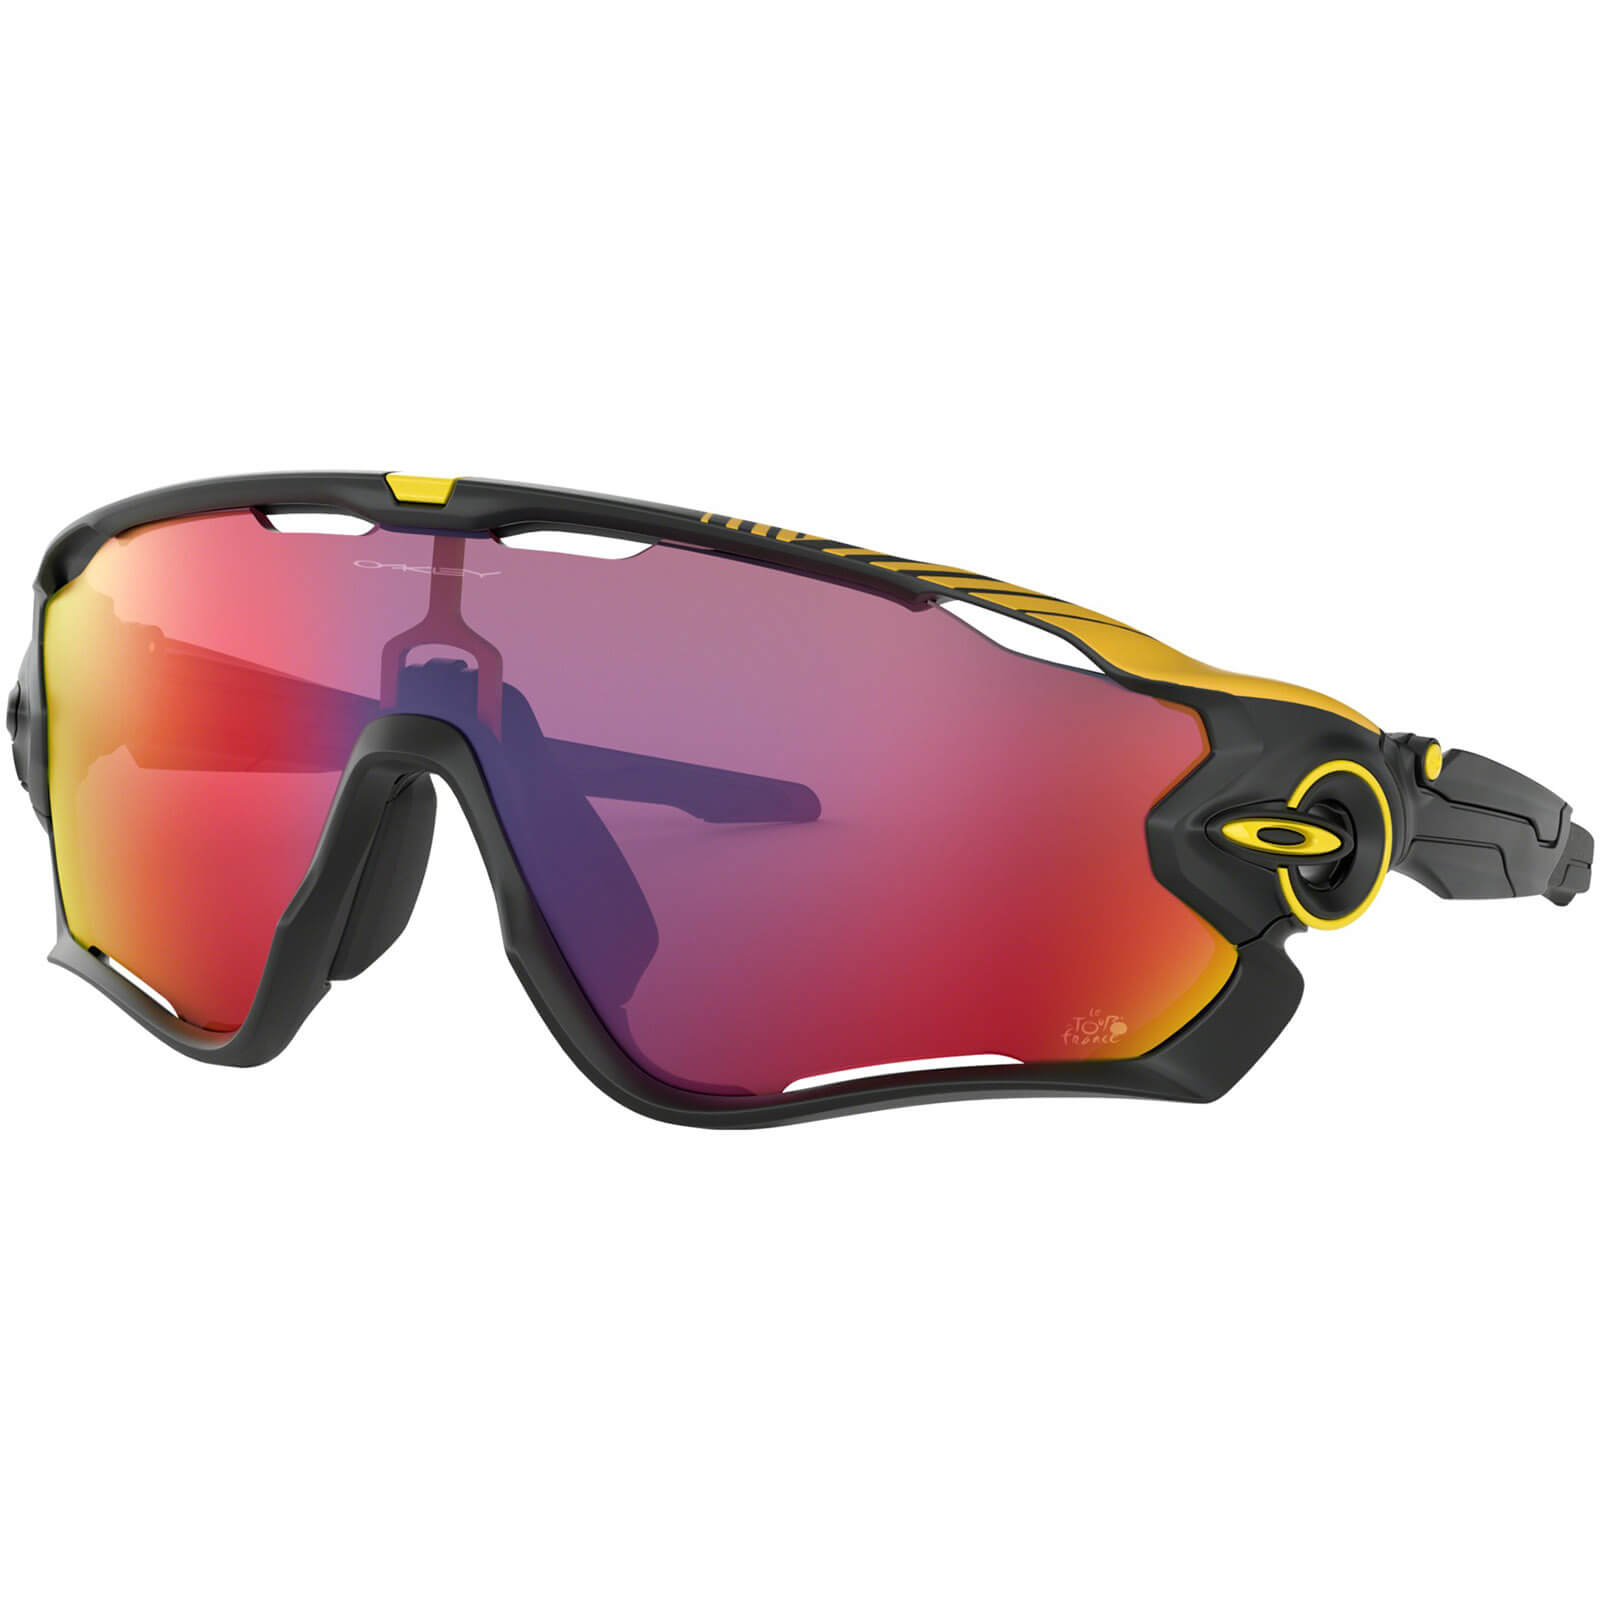 Oakley Jawbreaker Tour De France 2019 Sunglasses - Matte Black/Prizm Road